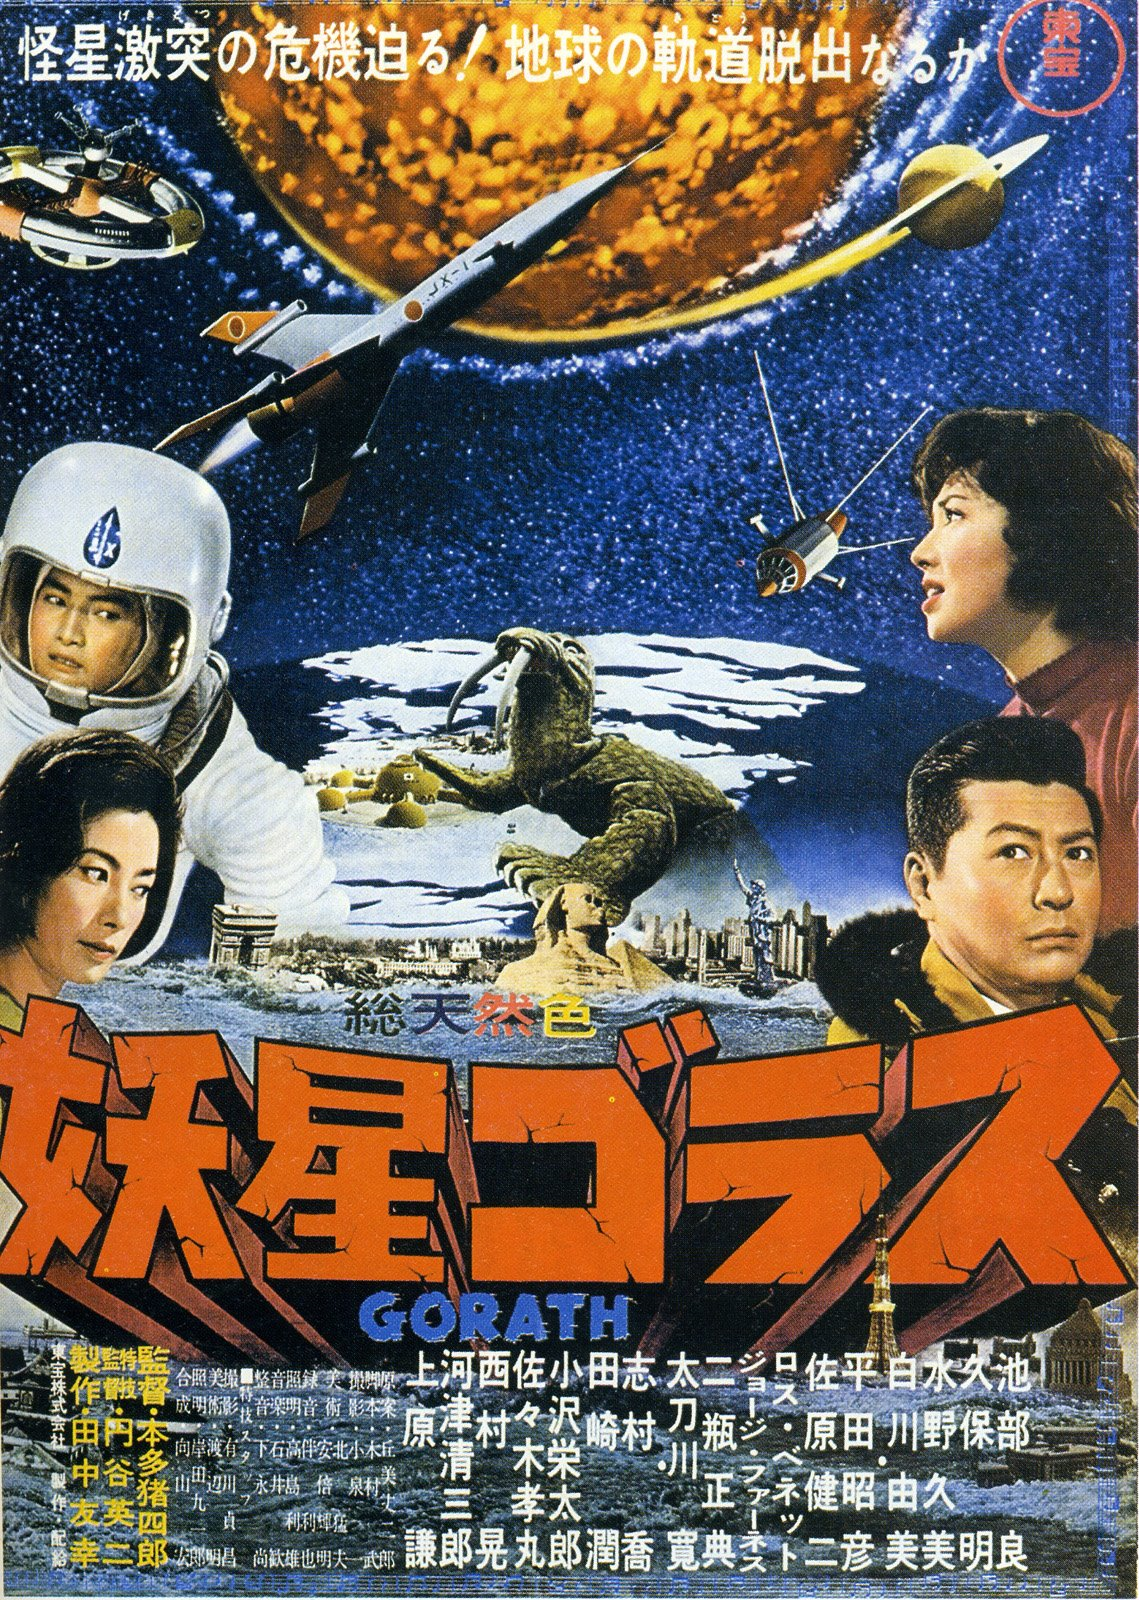 Gorath - Movie Poster